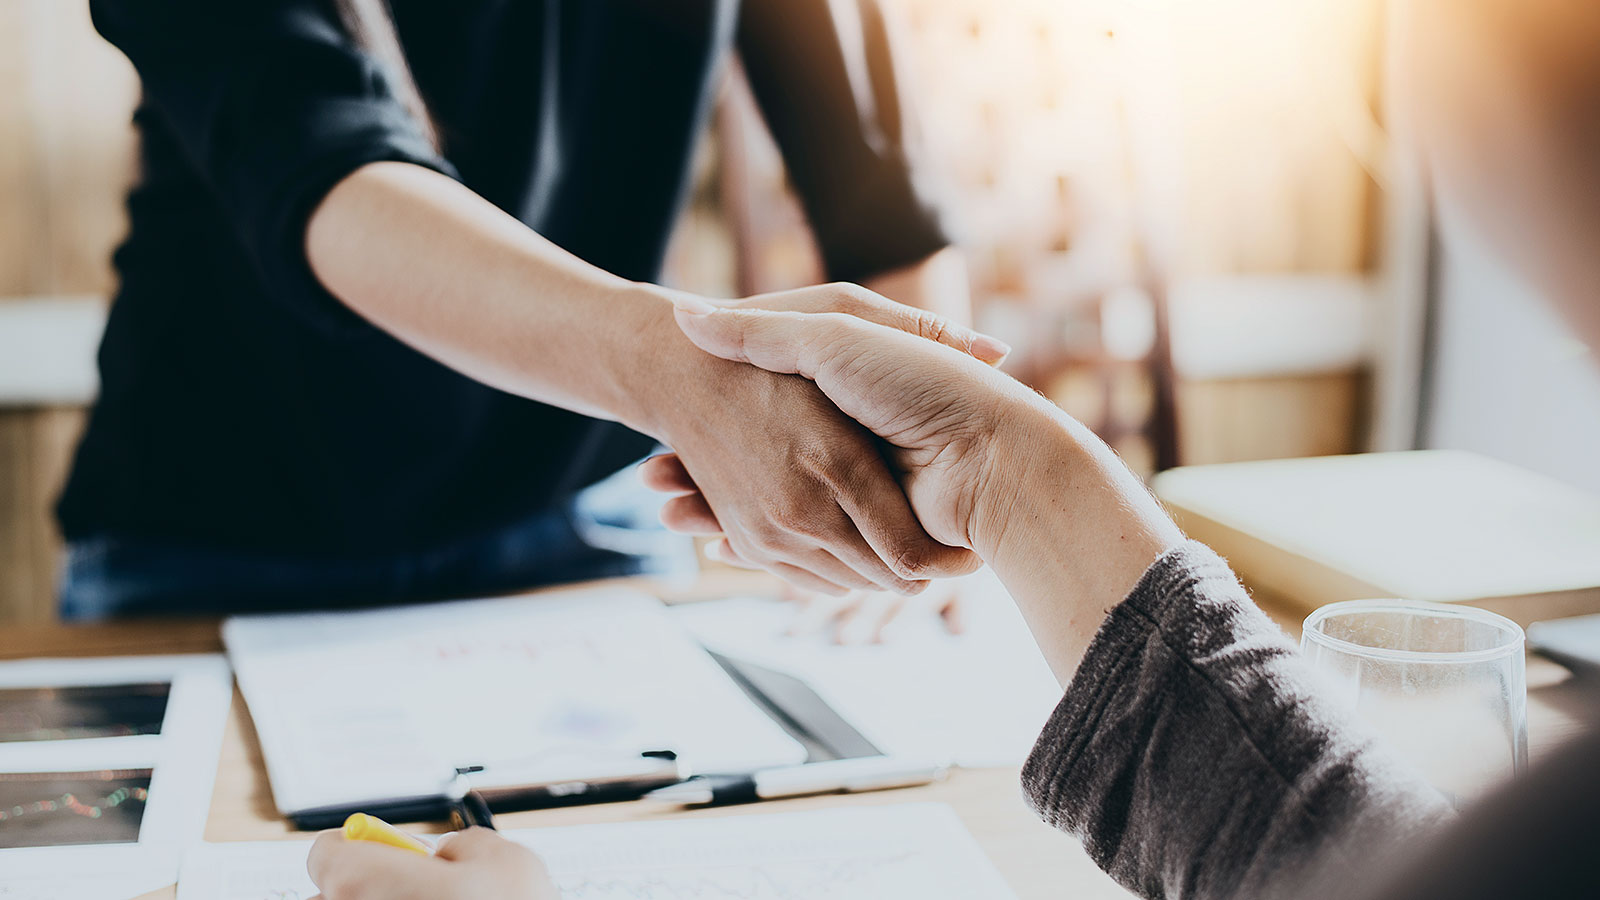 Tips for negotiating a new job offer